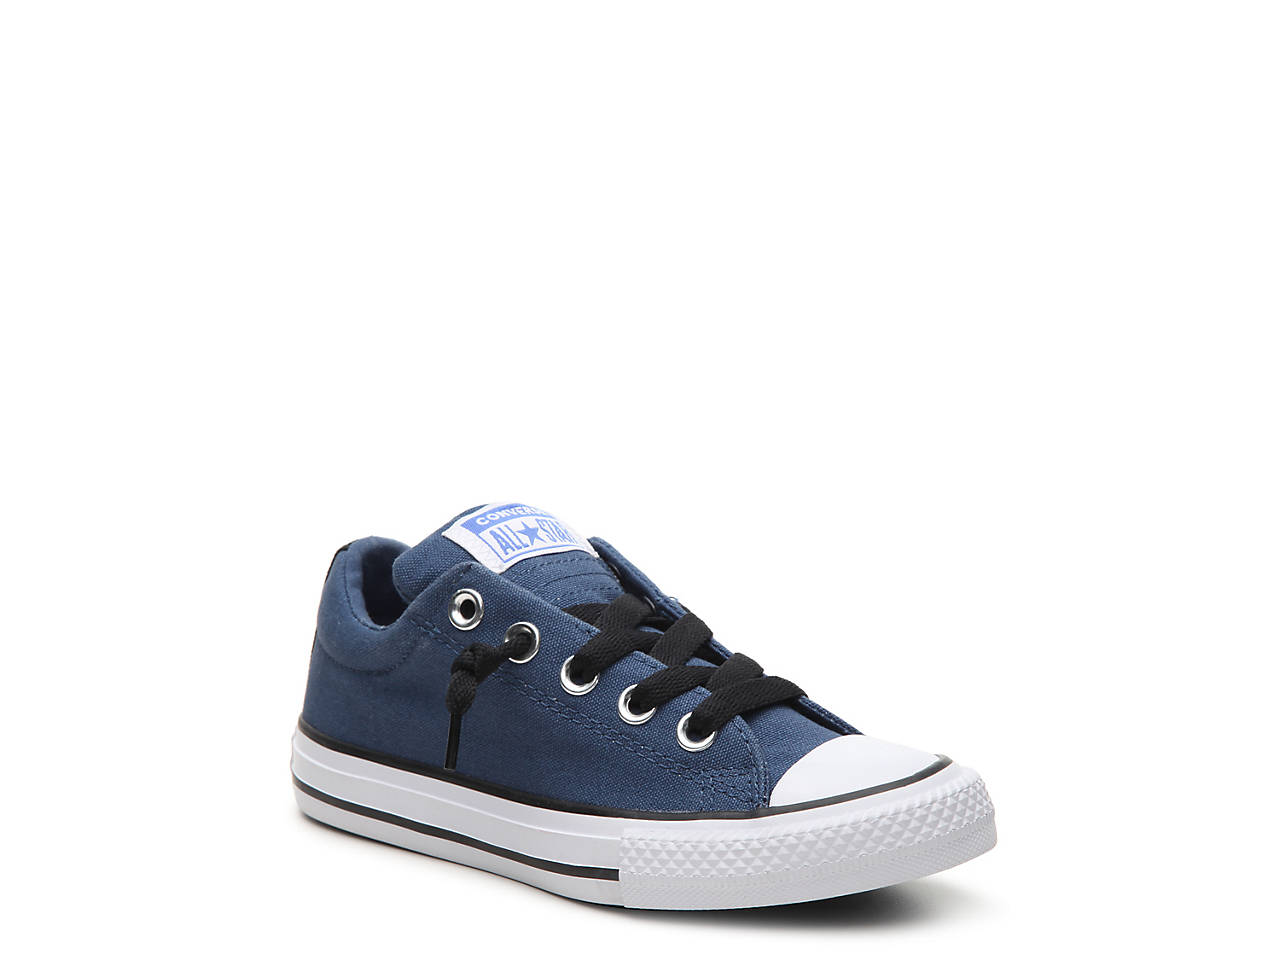 4ec47a16561a6f Converse Chuck Taylor All Star Street Toddler   Youth Slip-On ...